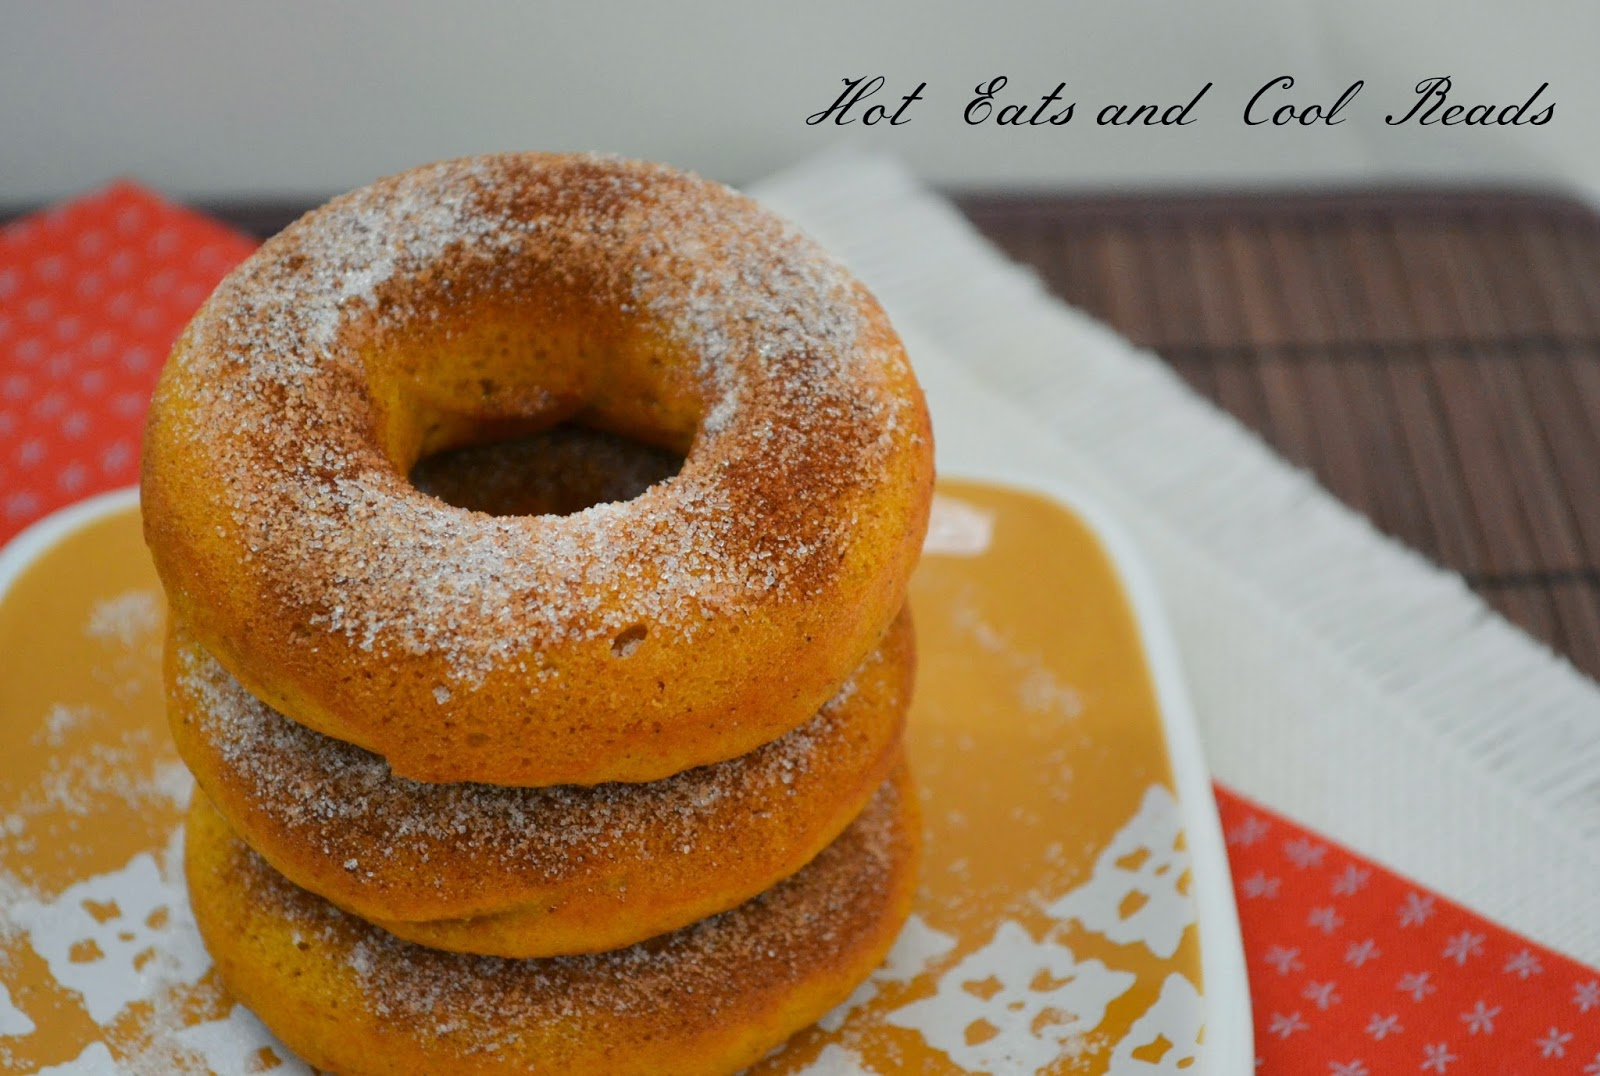 Baked Pumpkin Spice Donuts Recipe from Hot Eats and Cool Reads! These easy and delicious donuts or doughnuts are perfect for fall! Top them with cinnamon and sugar for a sweet breakfast, snack or dessert!